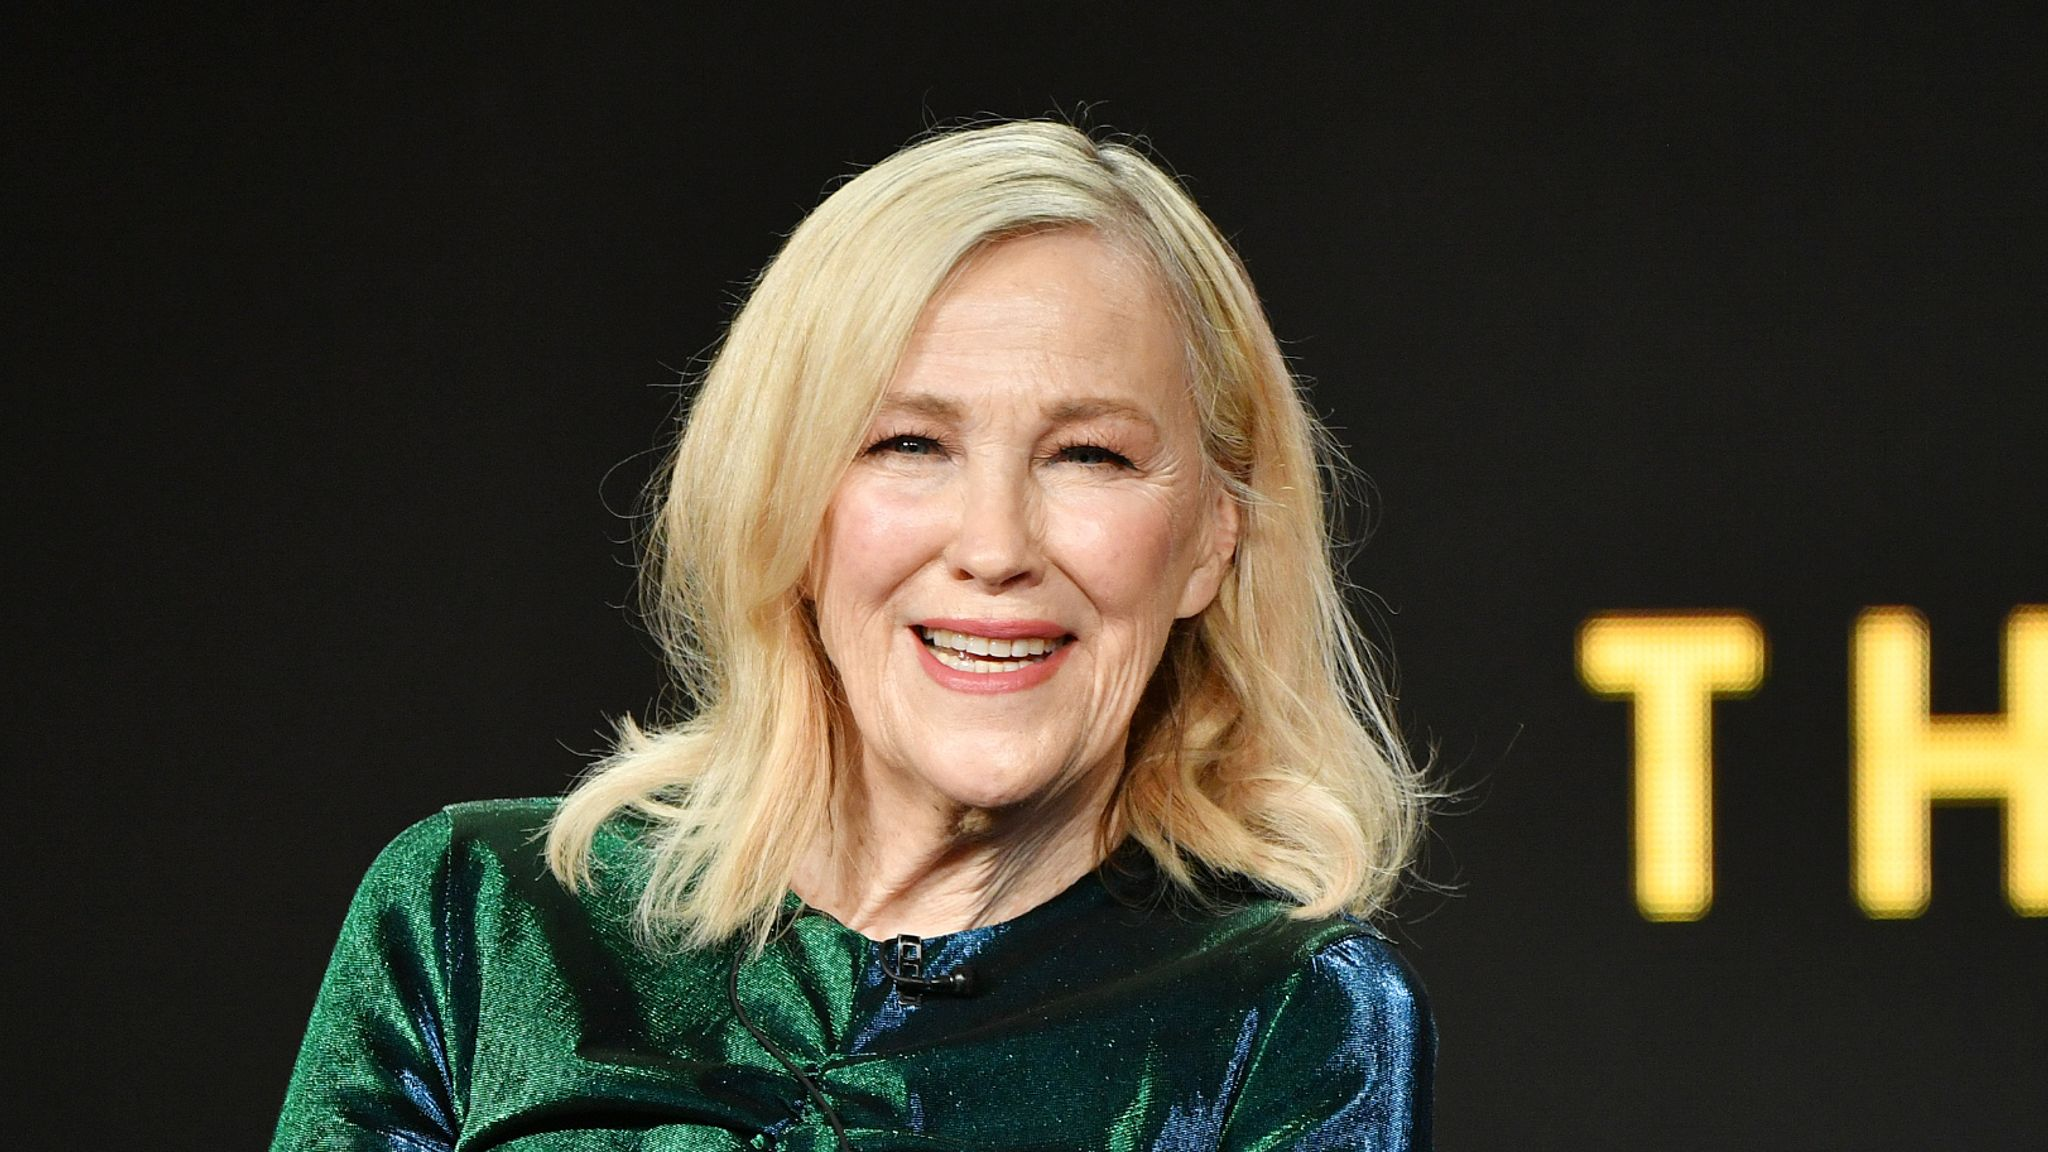 """PASADENA, CALIFORNIA - JANUARY 13: Catherine O'Hara of """"Schitt's Creek"""" speaks during the Pop TV segment of the 2020 Winter TCA Press Tour at The Langham Huntington, Pasadena on January 13, 2020 in Pasadena, California. (Photo by Amy Sussman/Getty Images)"""